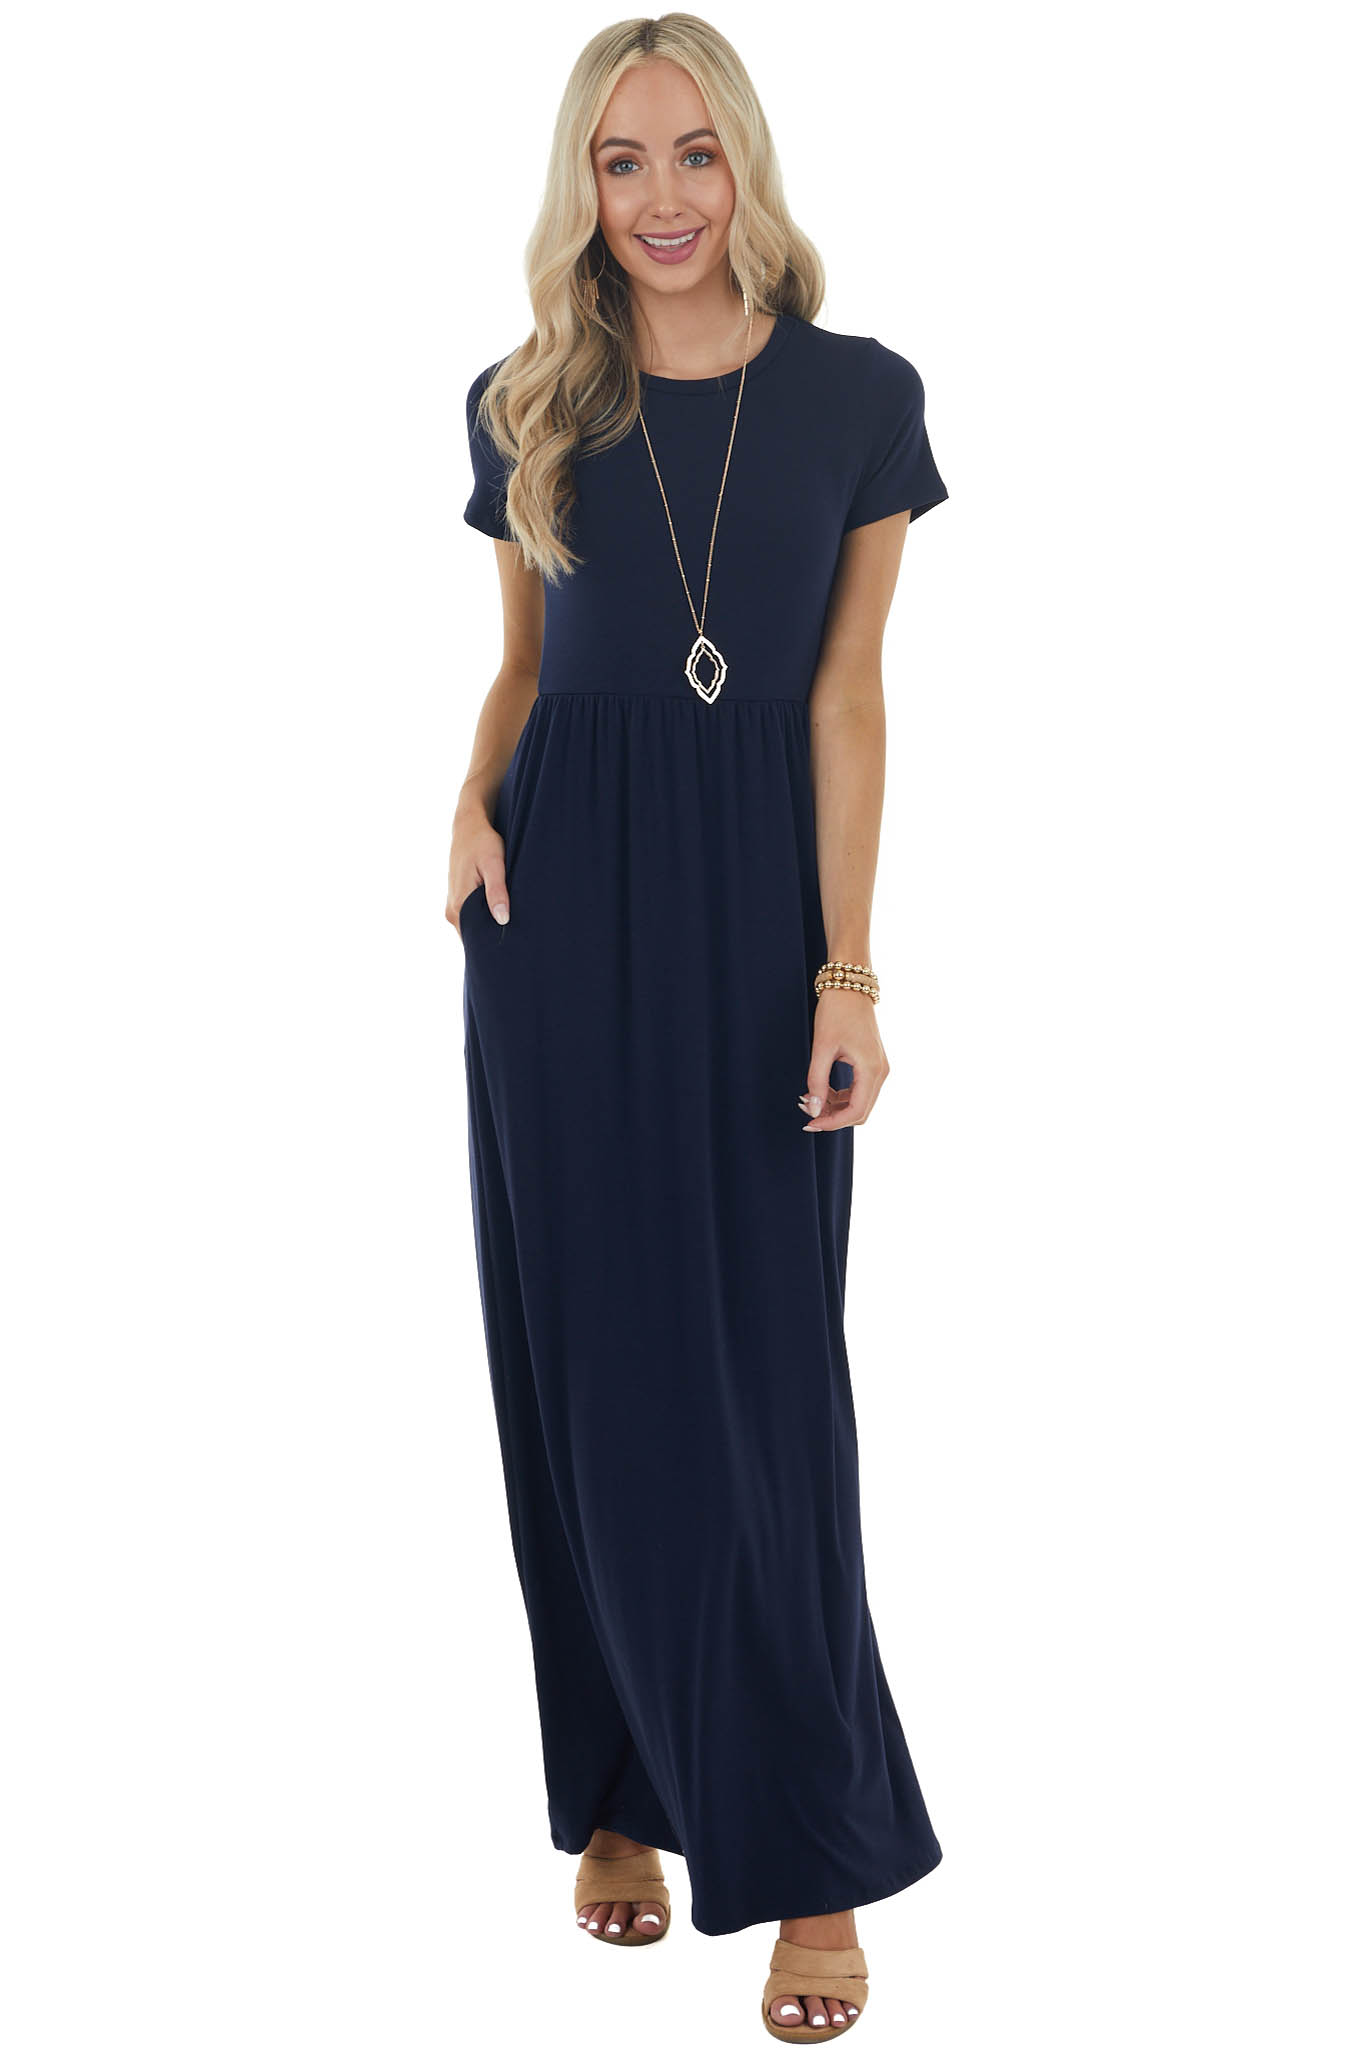 Navy Flowy Short Sleeve Knit Maxi Dress with Side Pockets